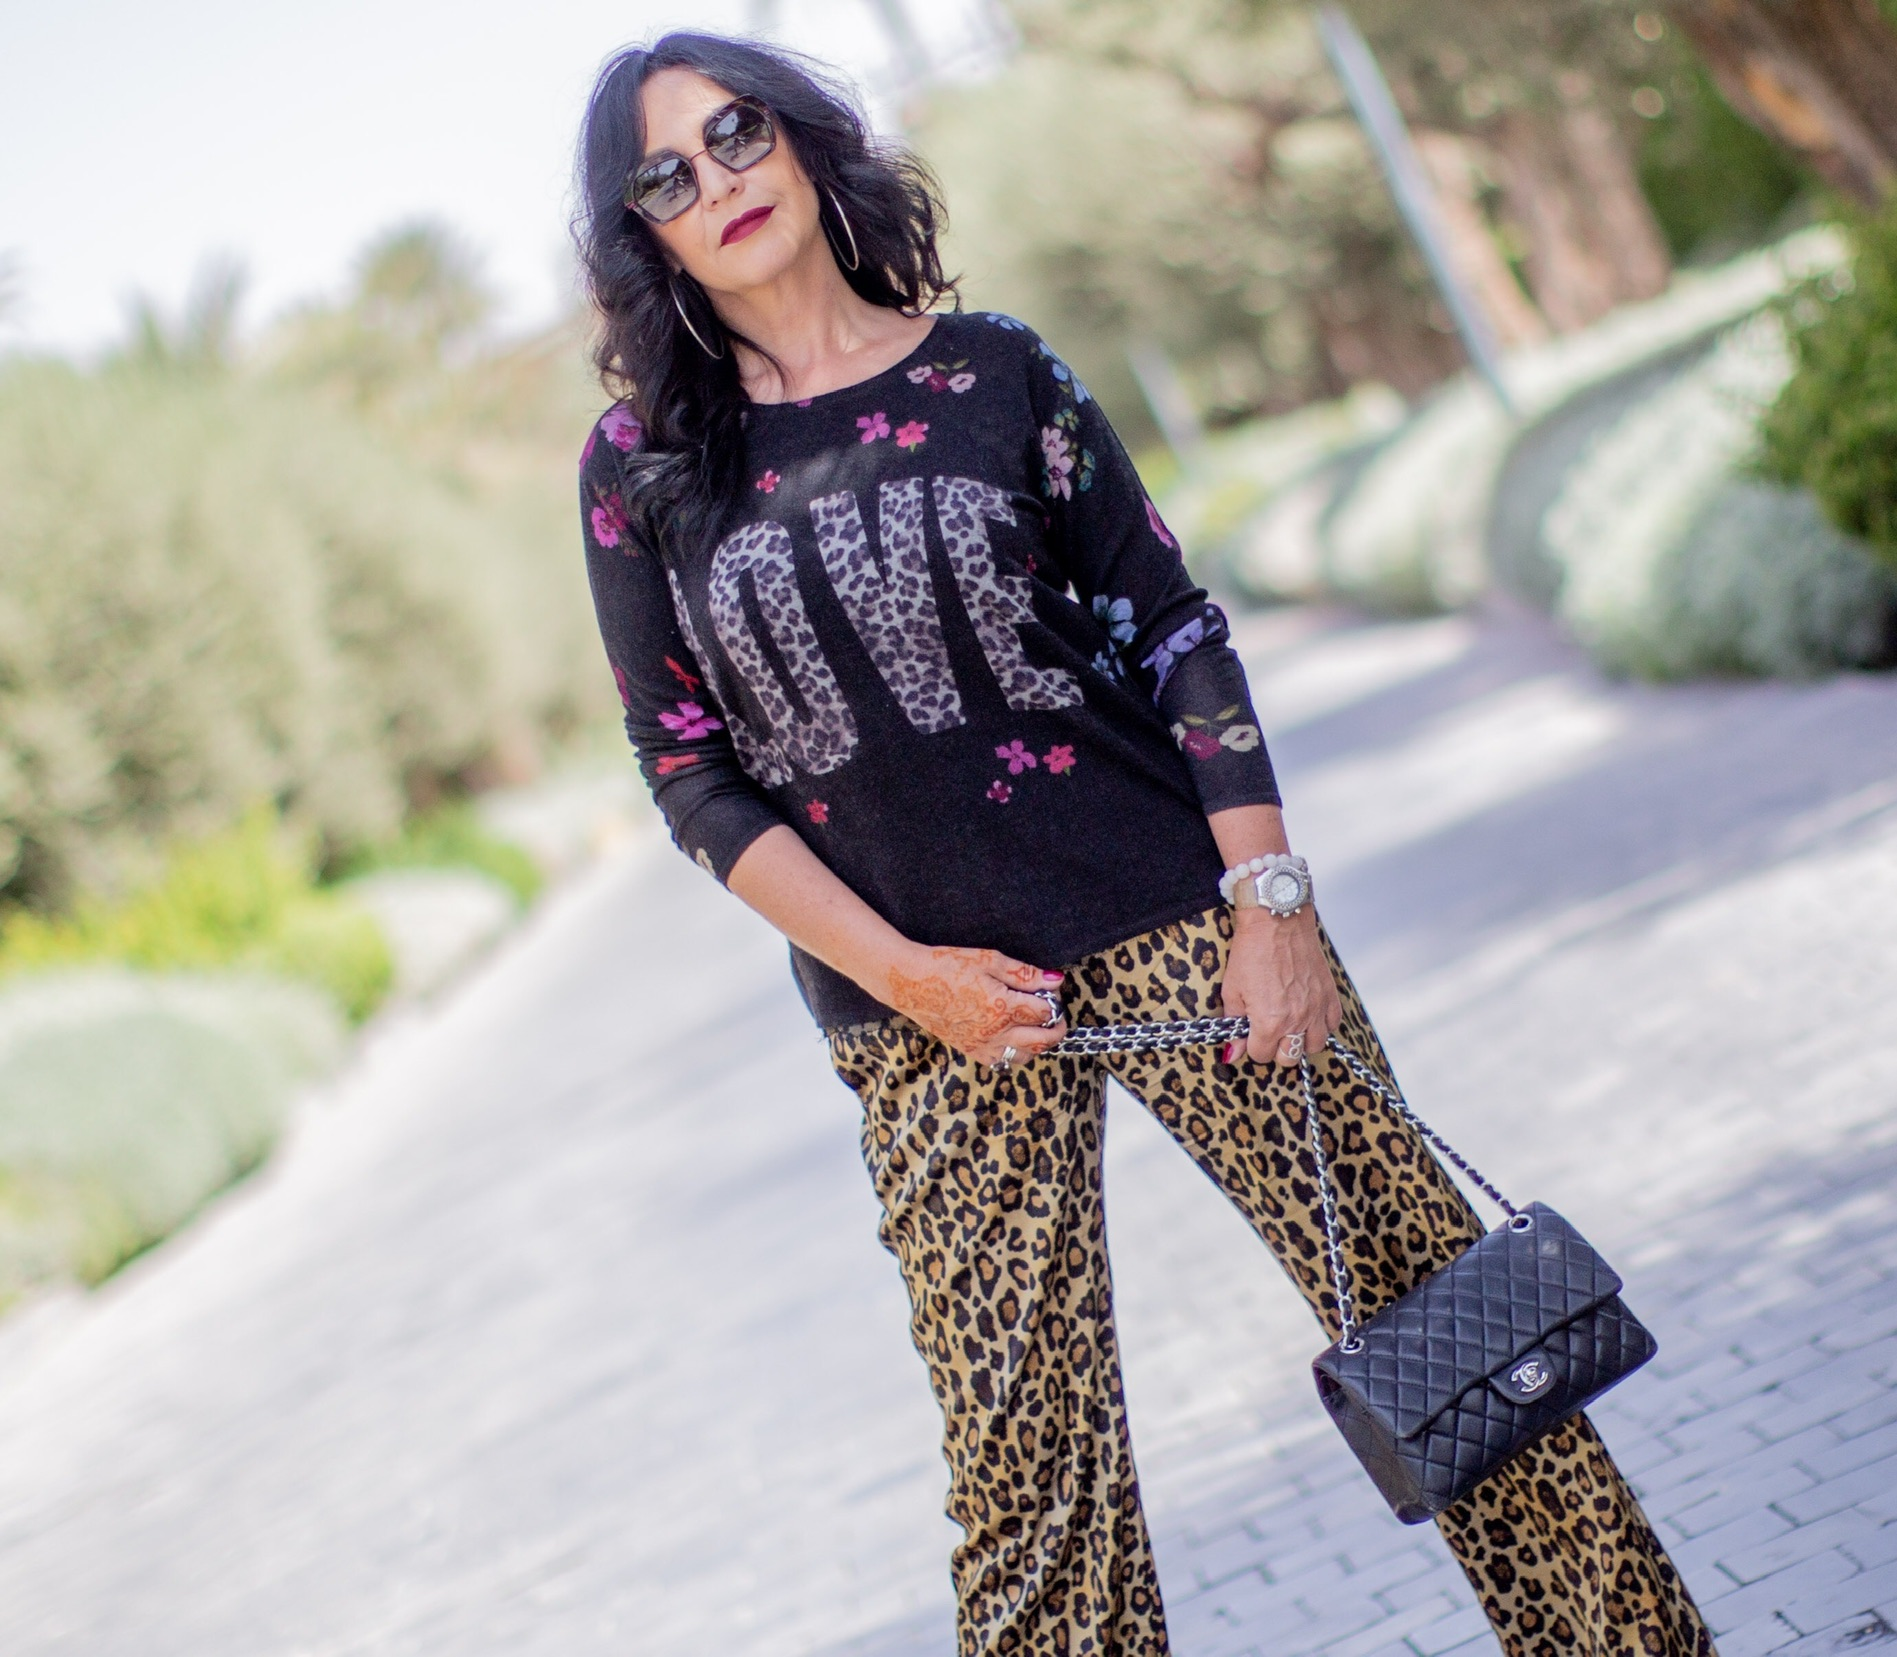 Fall outfit Grace Fashion, leoprint, flowers, Chanel bag, streetstyle, ageless fashion, style for ladies, silk, sweater, comfy pants, fall trends 2019, cashmere, autumn collection, designerwear, eyewearblogger, eyeweartrends, LOVE, designerbag, accessoires